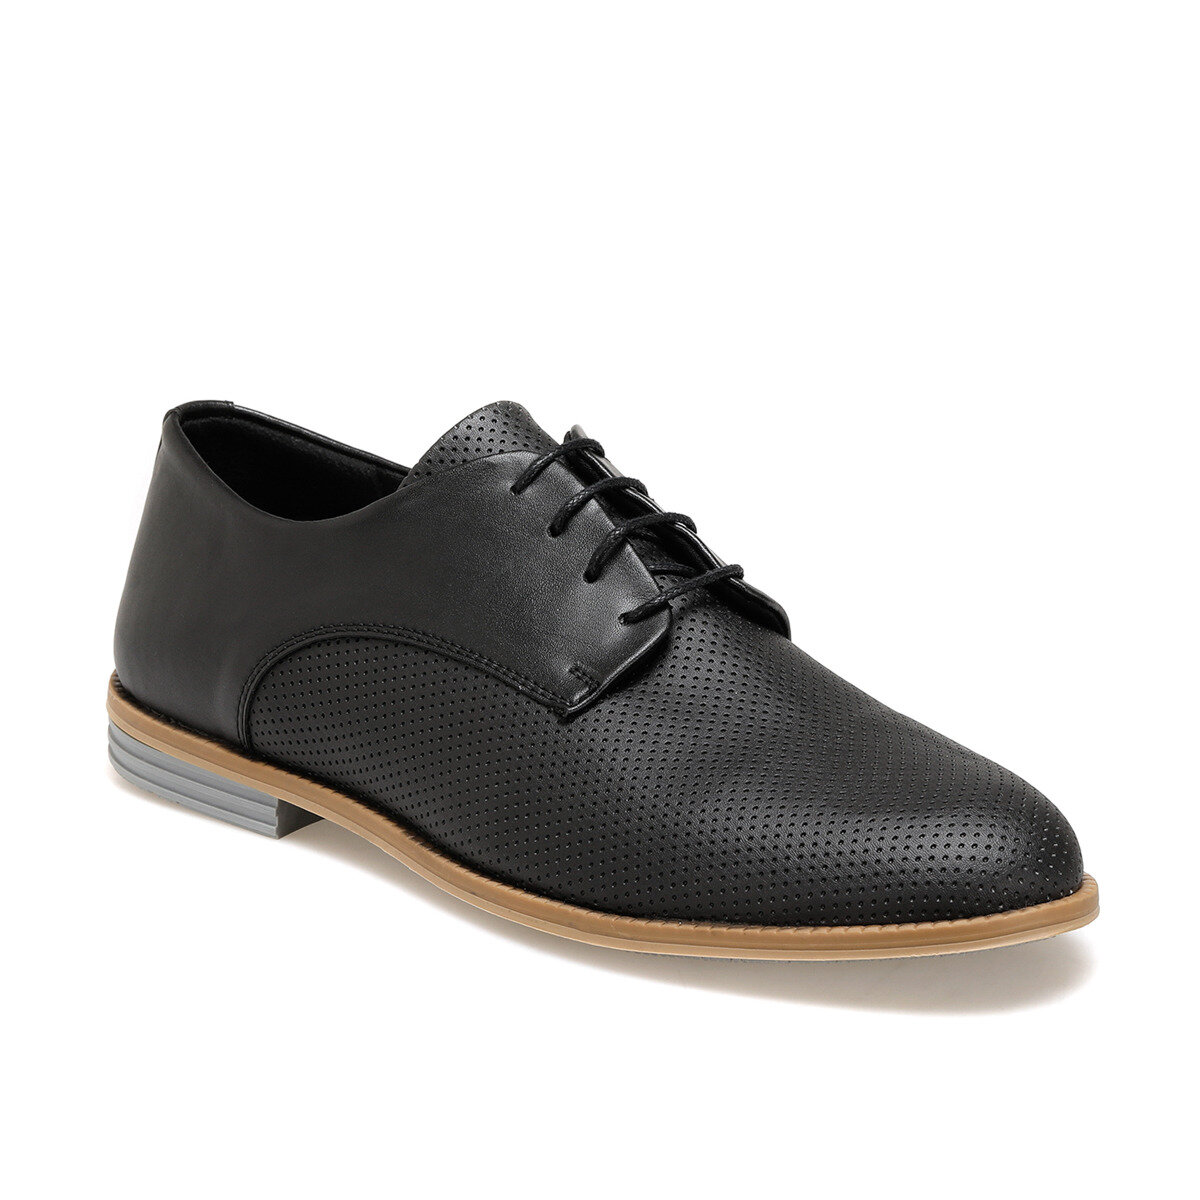 FLO 851-2 Black Men Dress Shoes JJ-Stiller